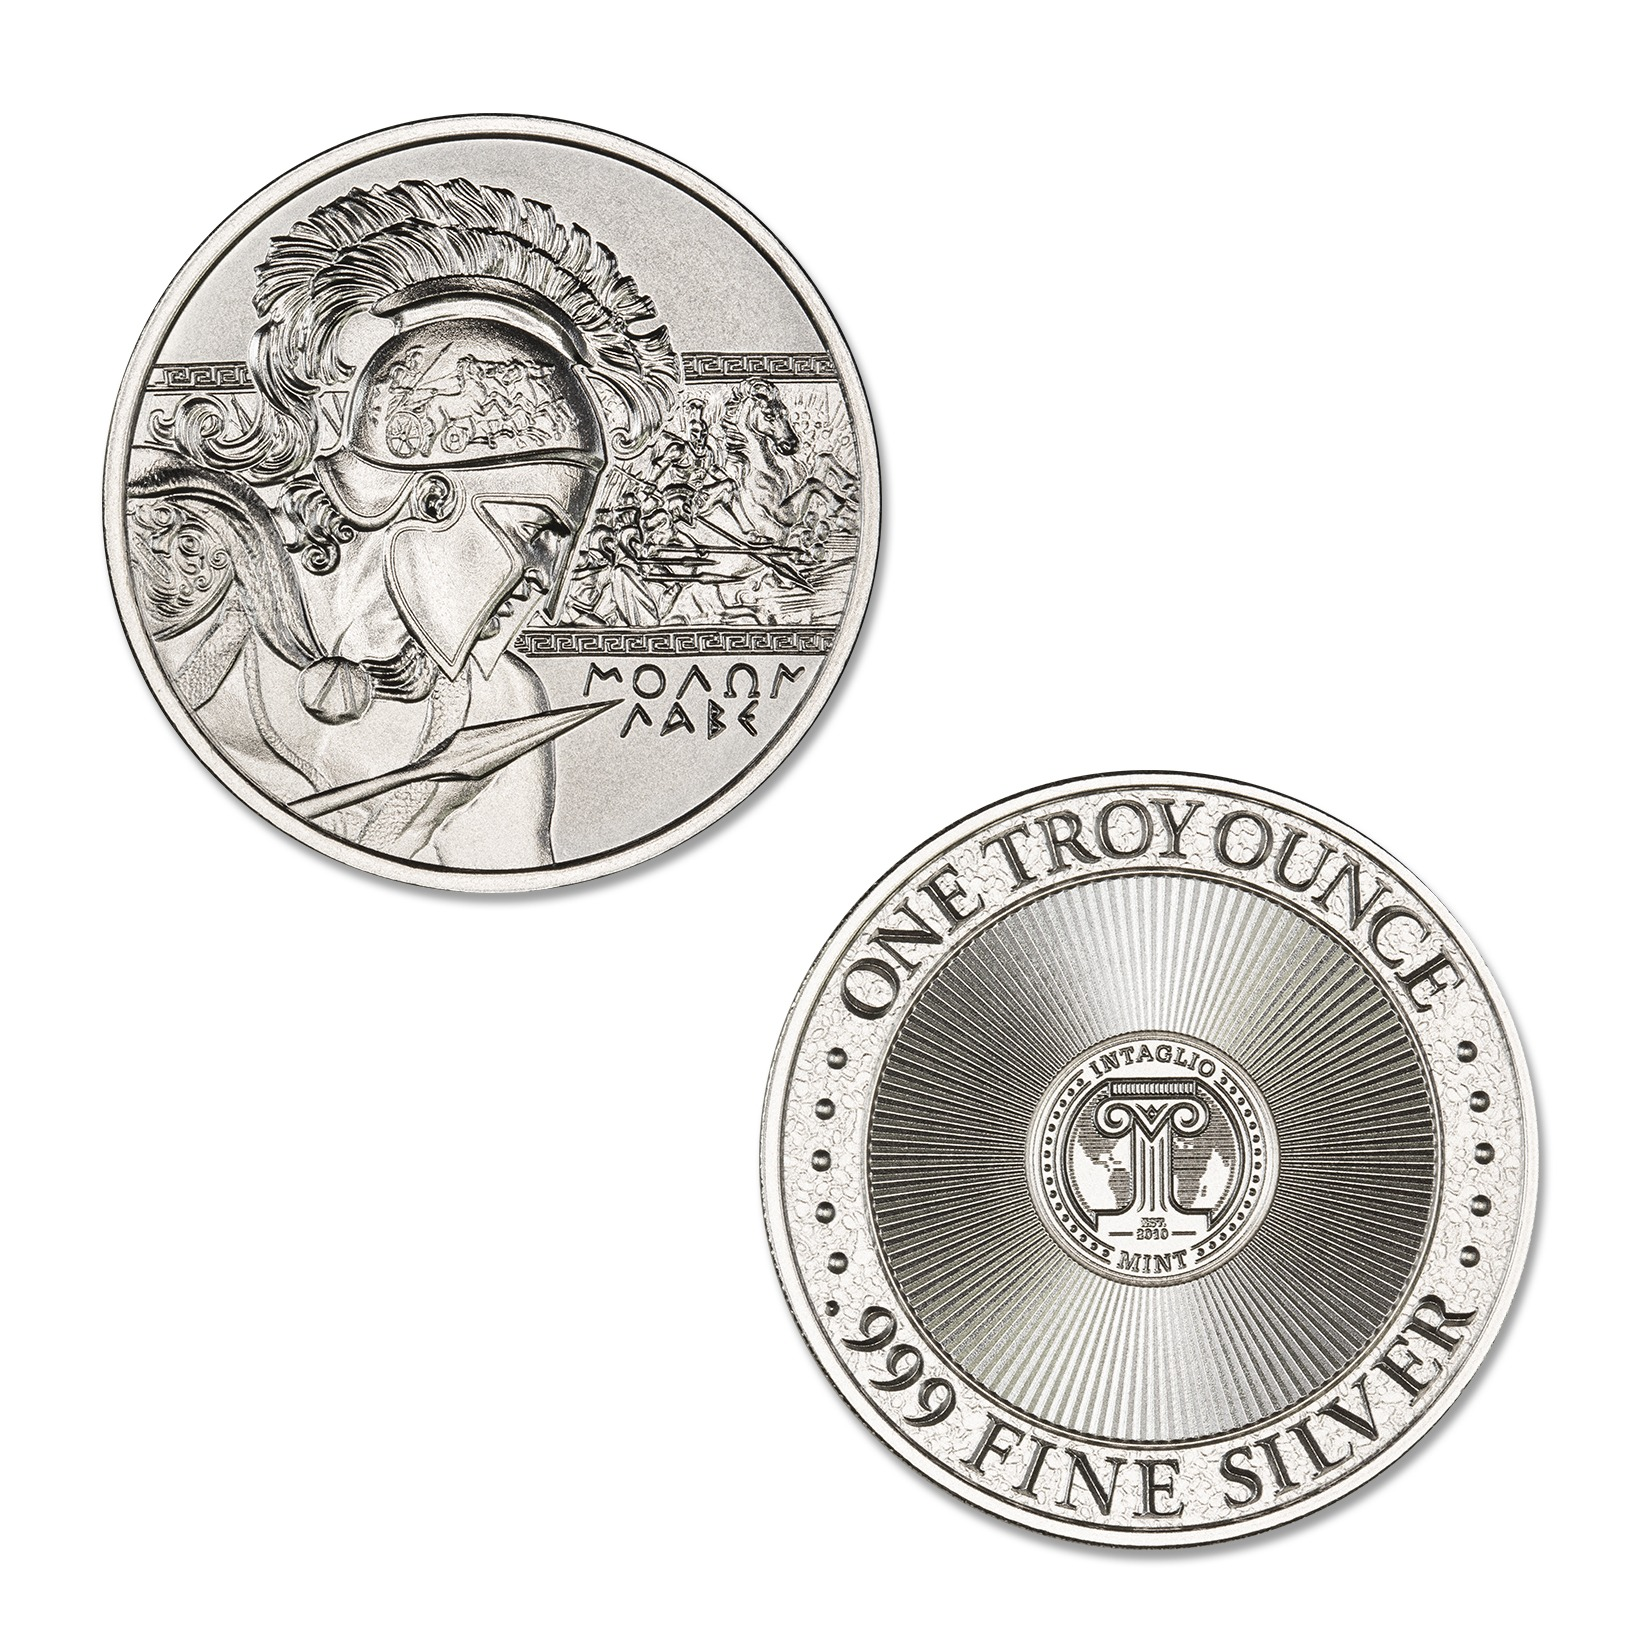 MOLON LABE – 1 TROY OUNCE – 39MM